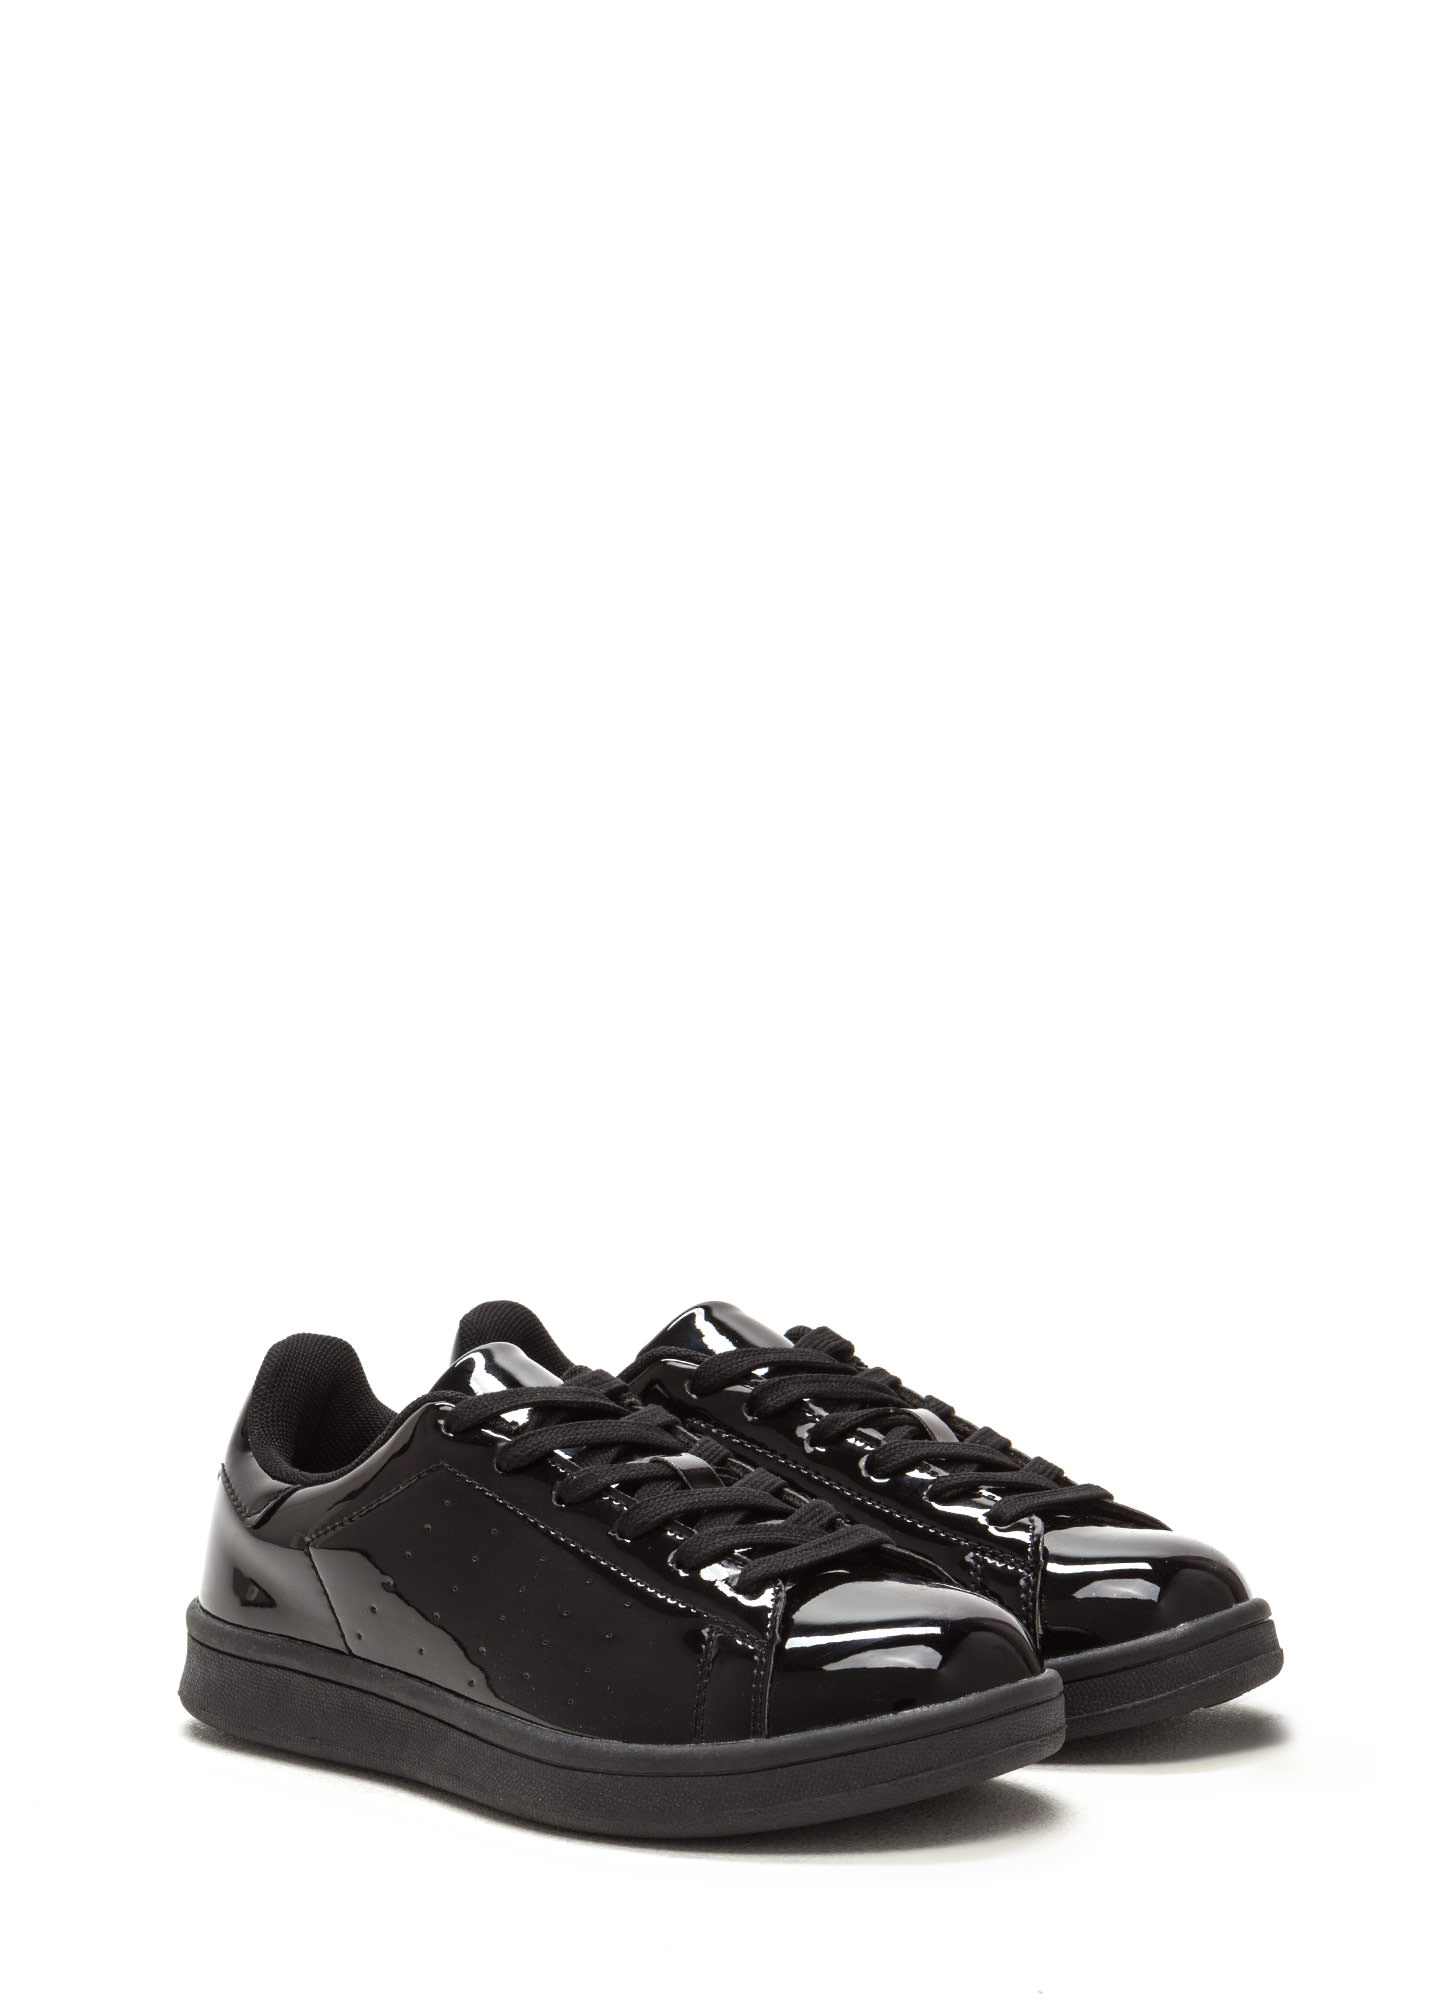 Sole Seeker Faux Patent Leather Sneakers BLACK